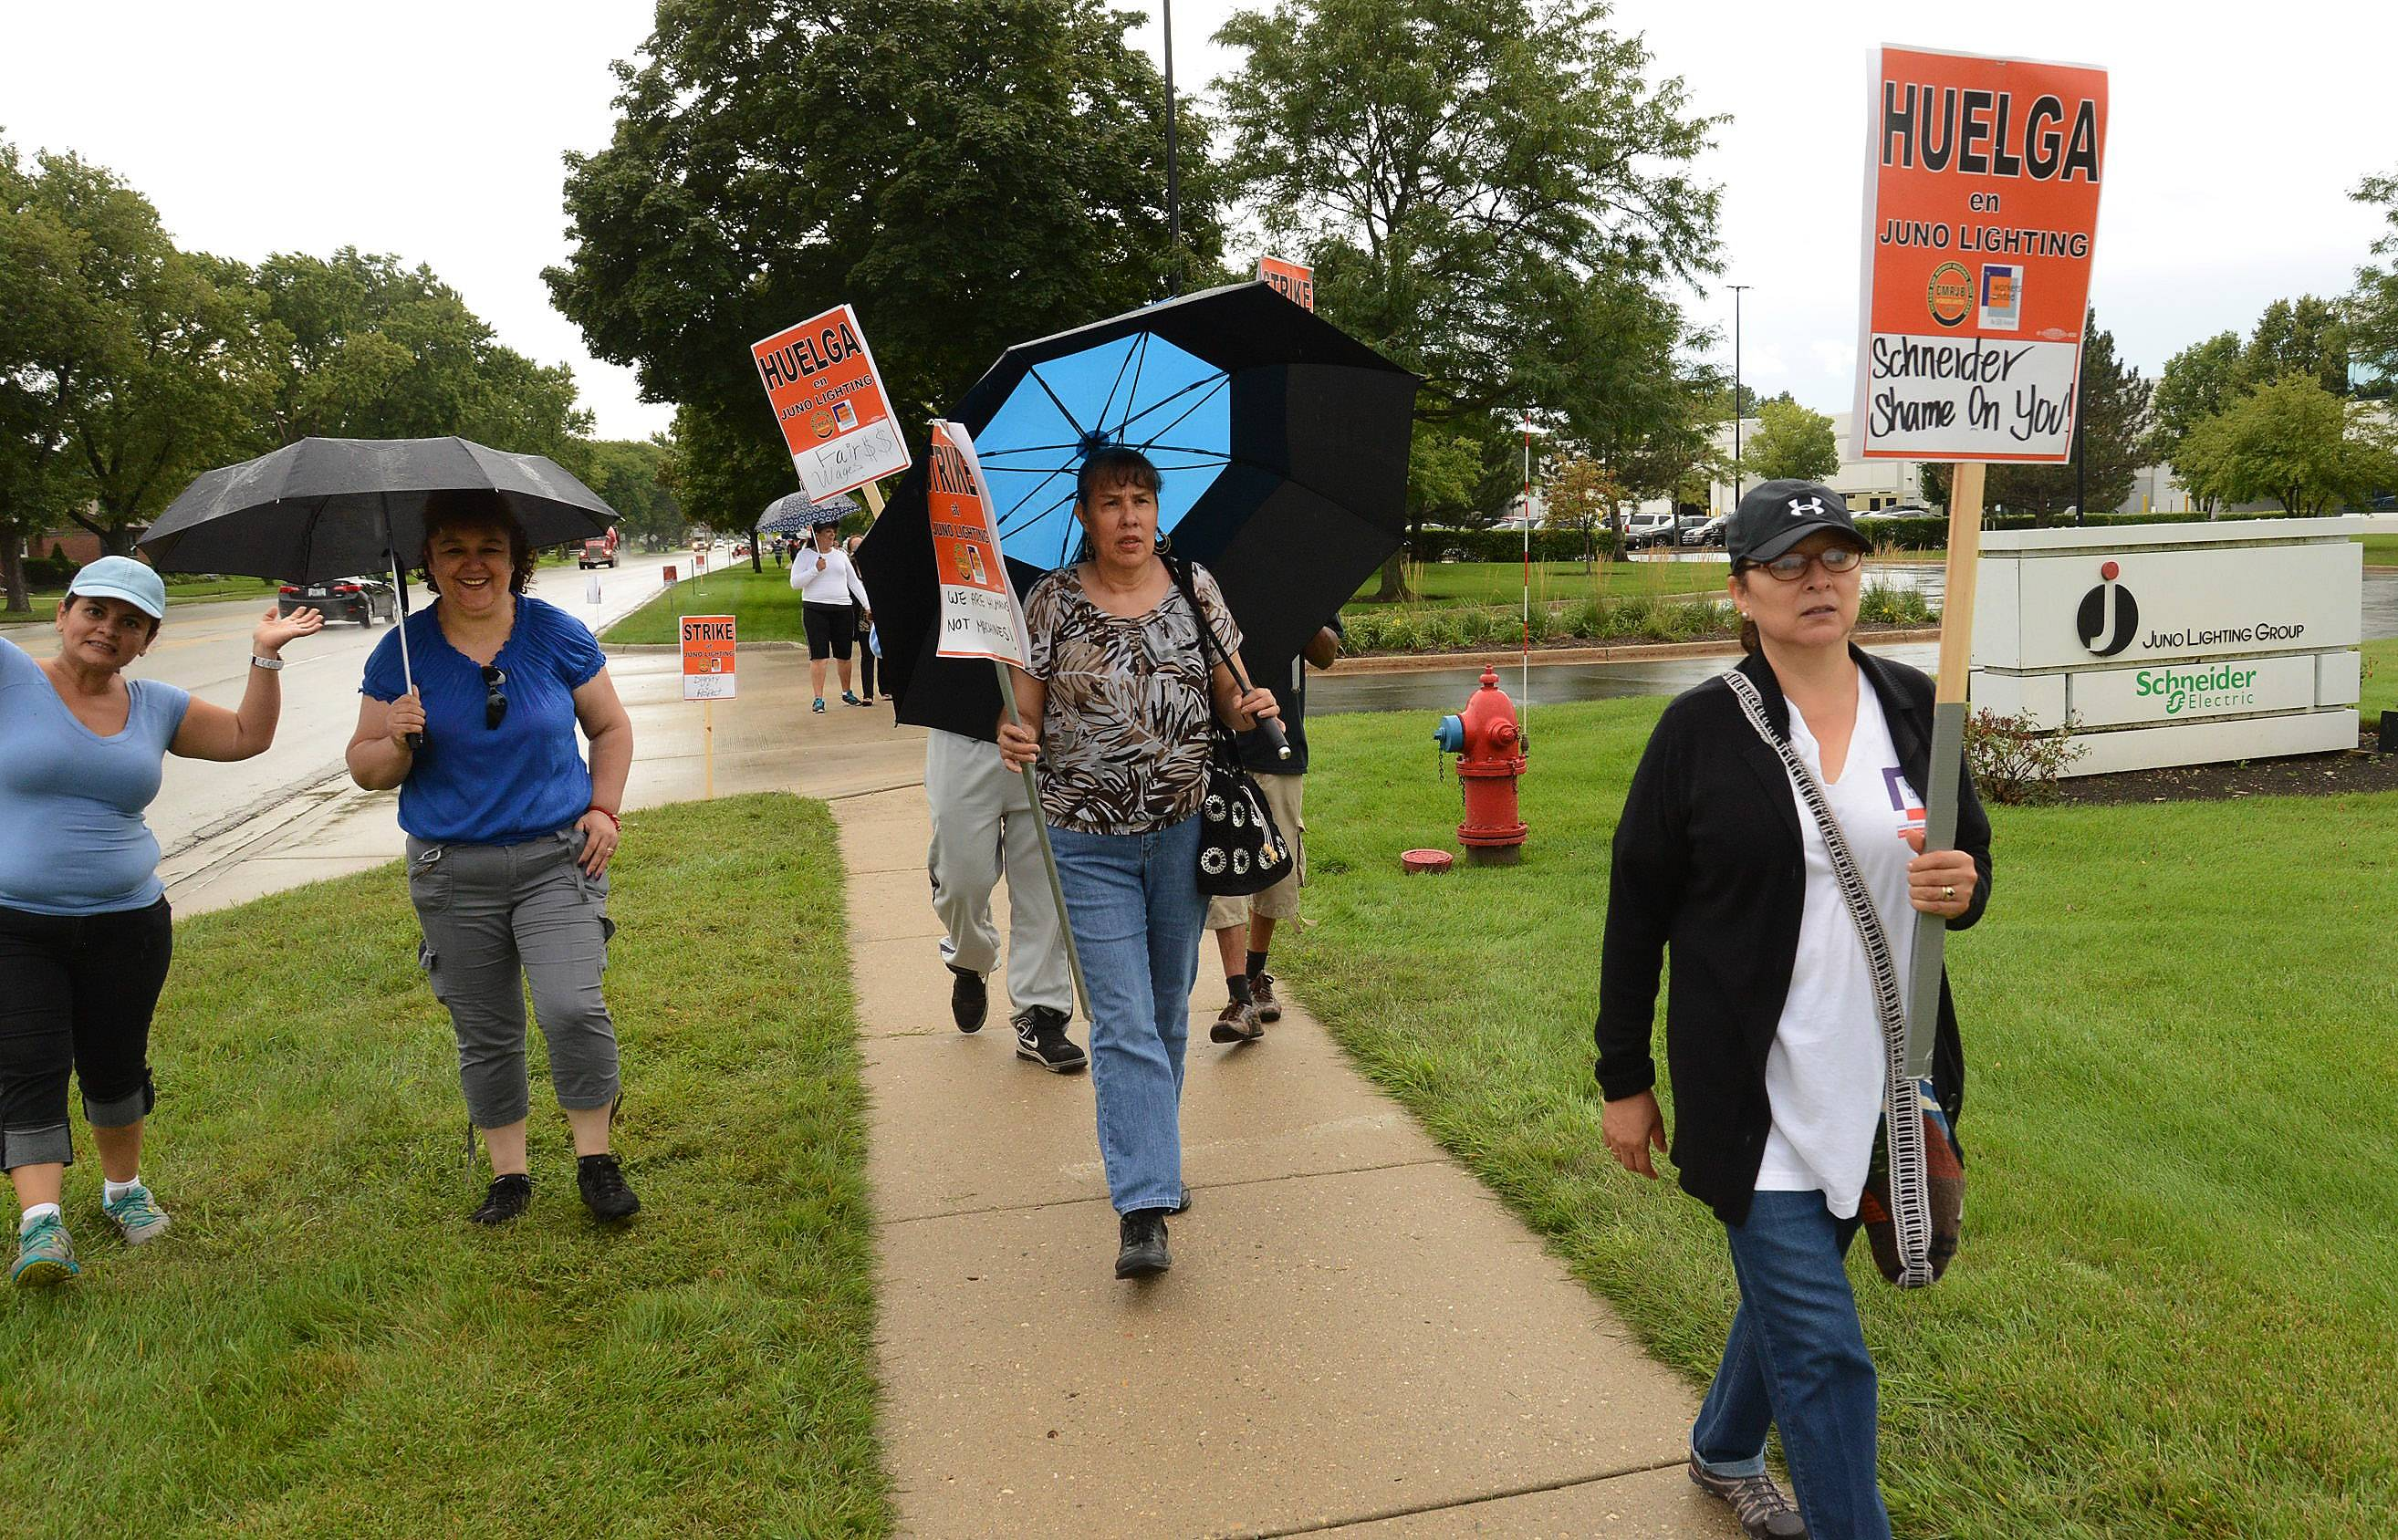 & Workers on strike at Juno Lighting Group in Des Plaines azcodes.com